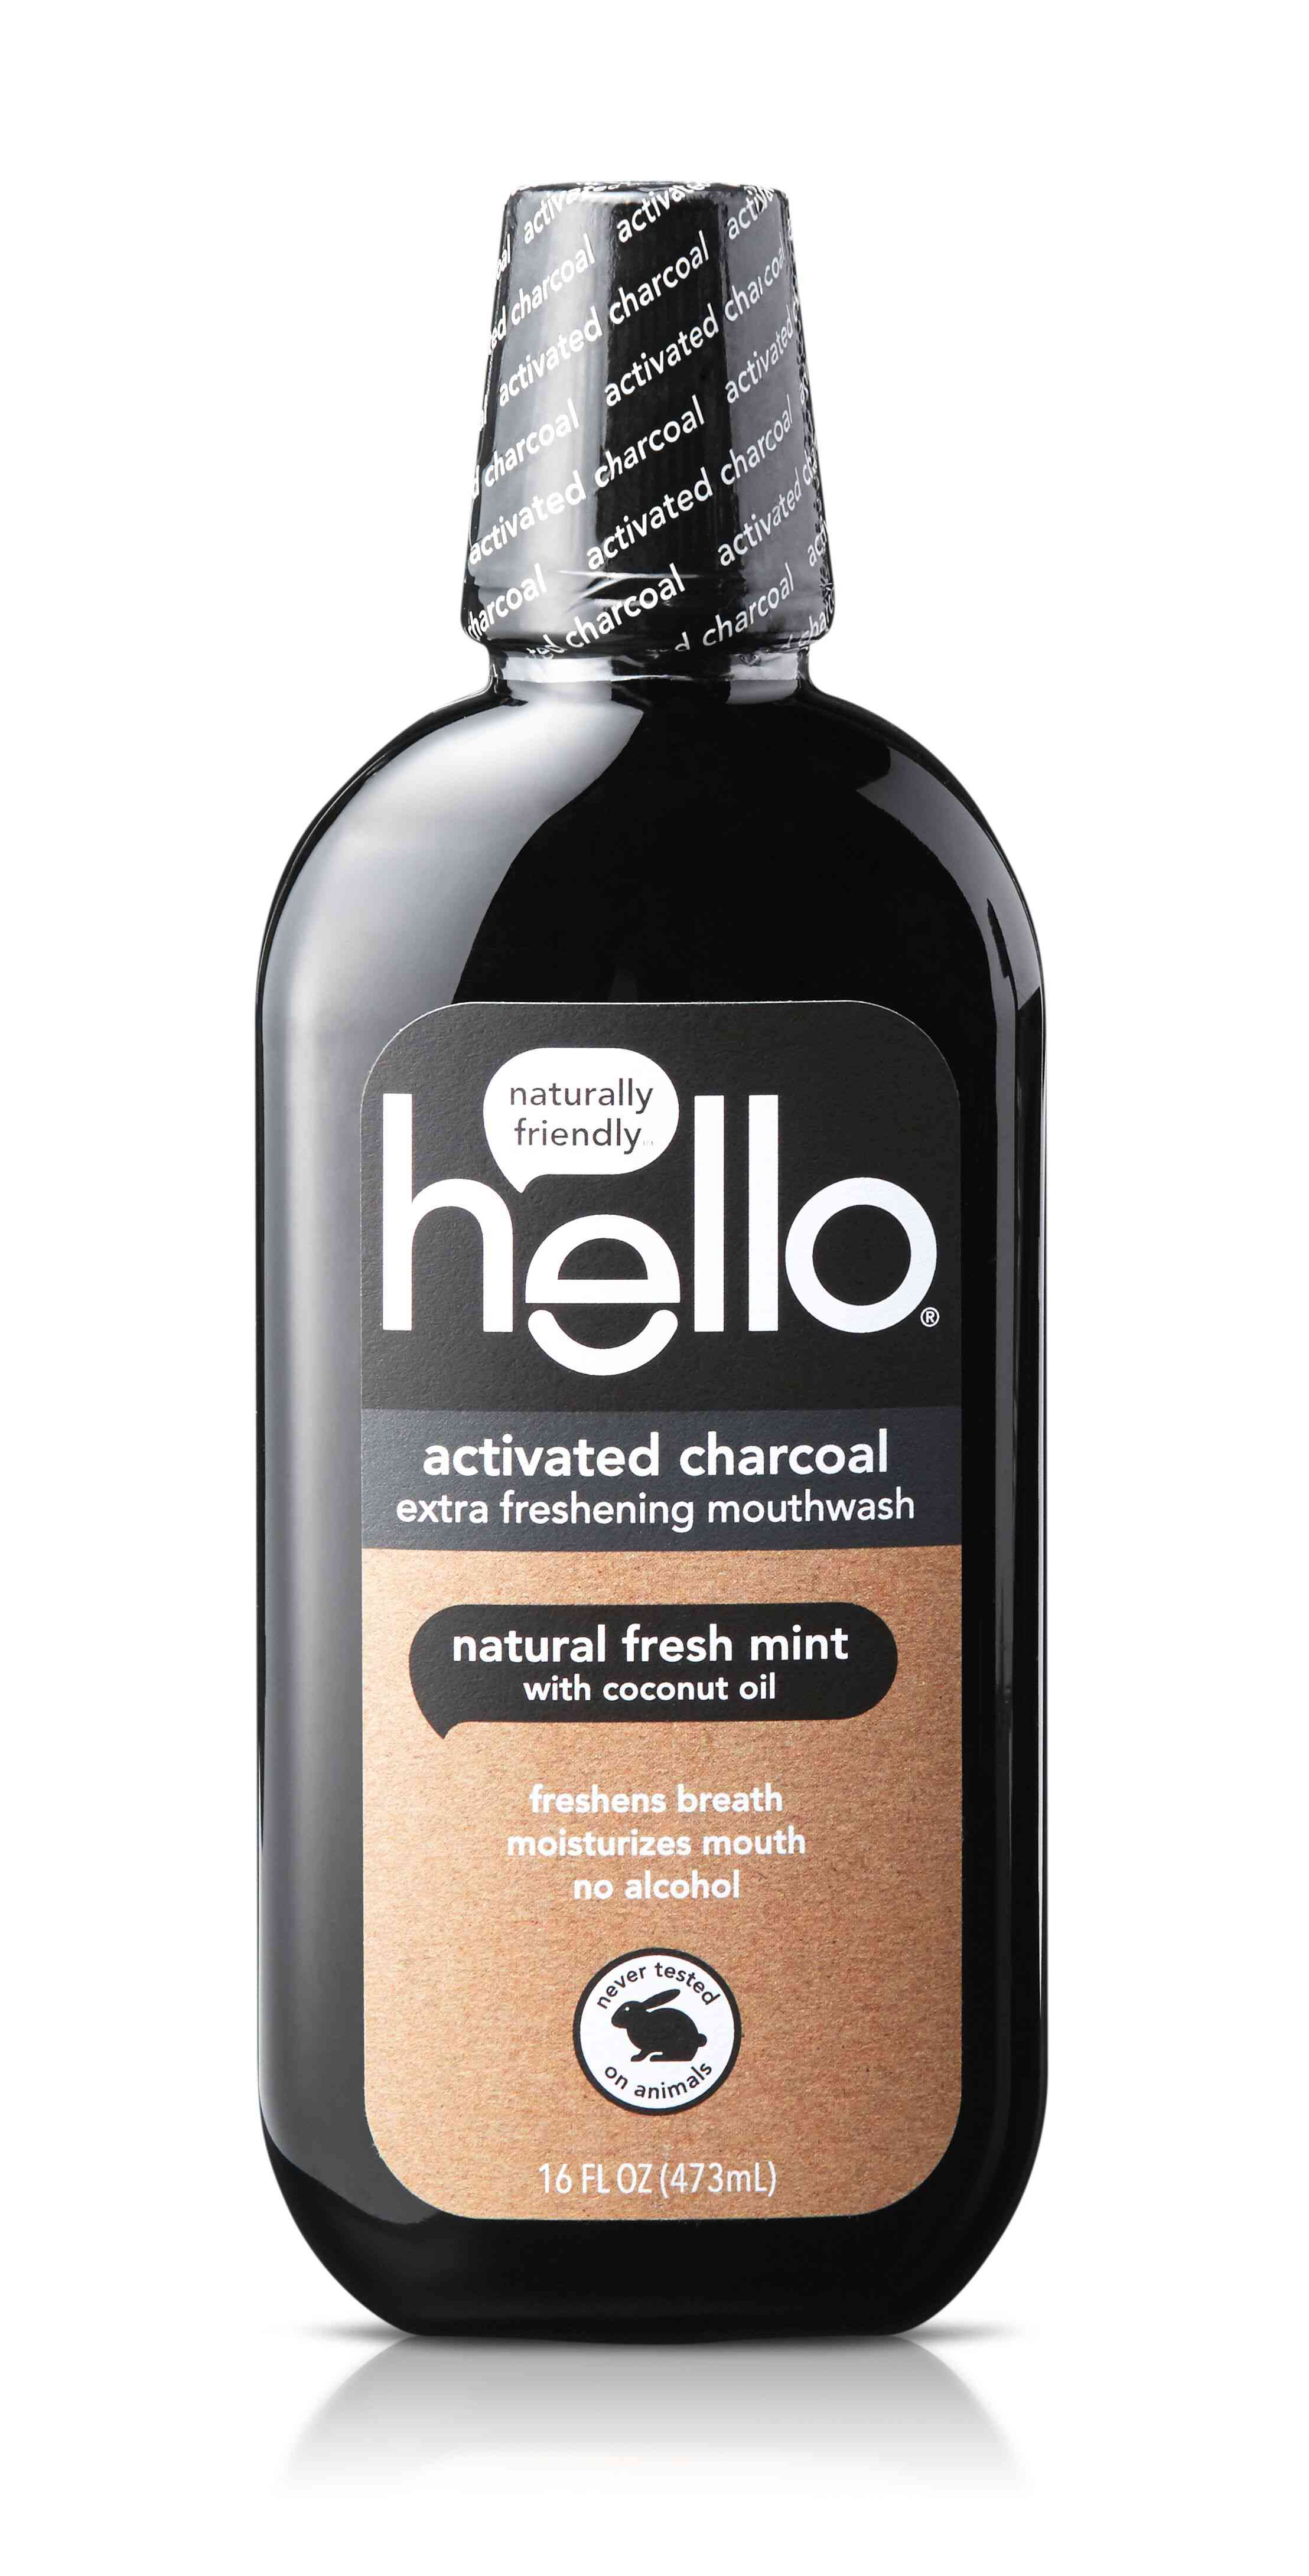 Hello Activated Charcoal Natural Fresh Mint + Coconut Oil Mouthwash